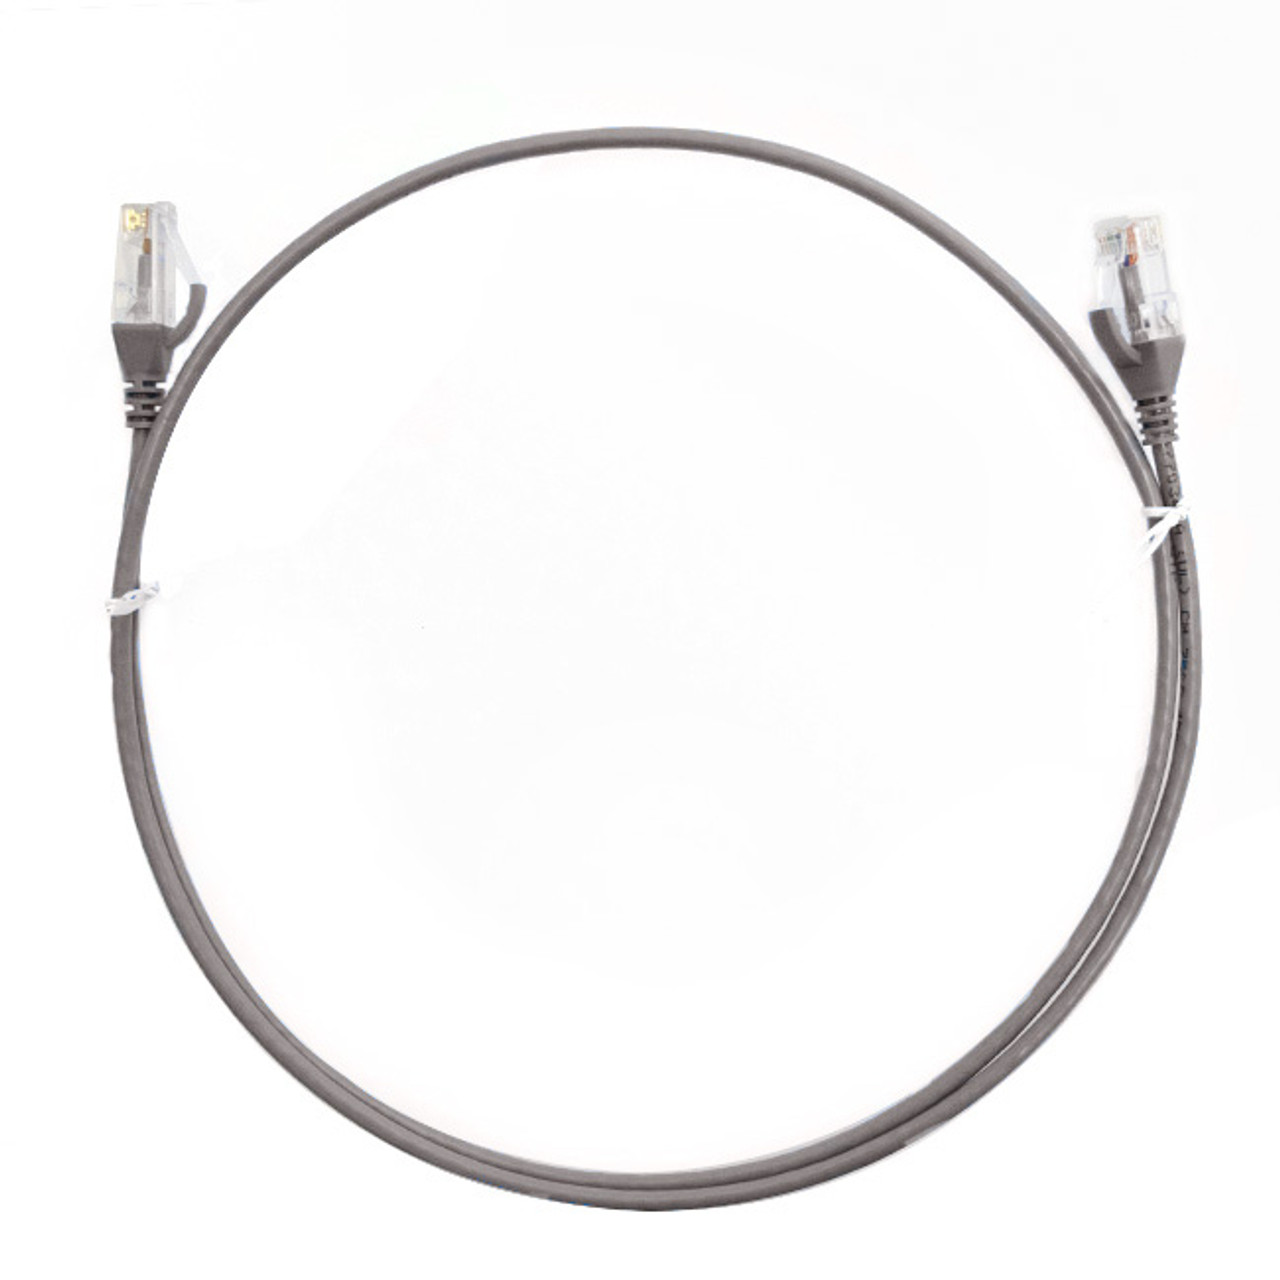 Image for 5m Cat 6 Ultra Thin LSZH Ethernet Network Cables: Grey CX Computer Superstore